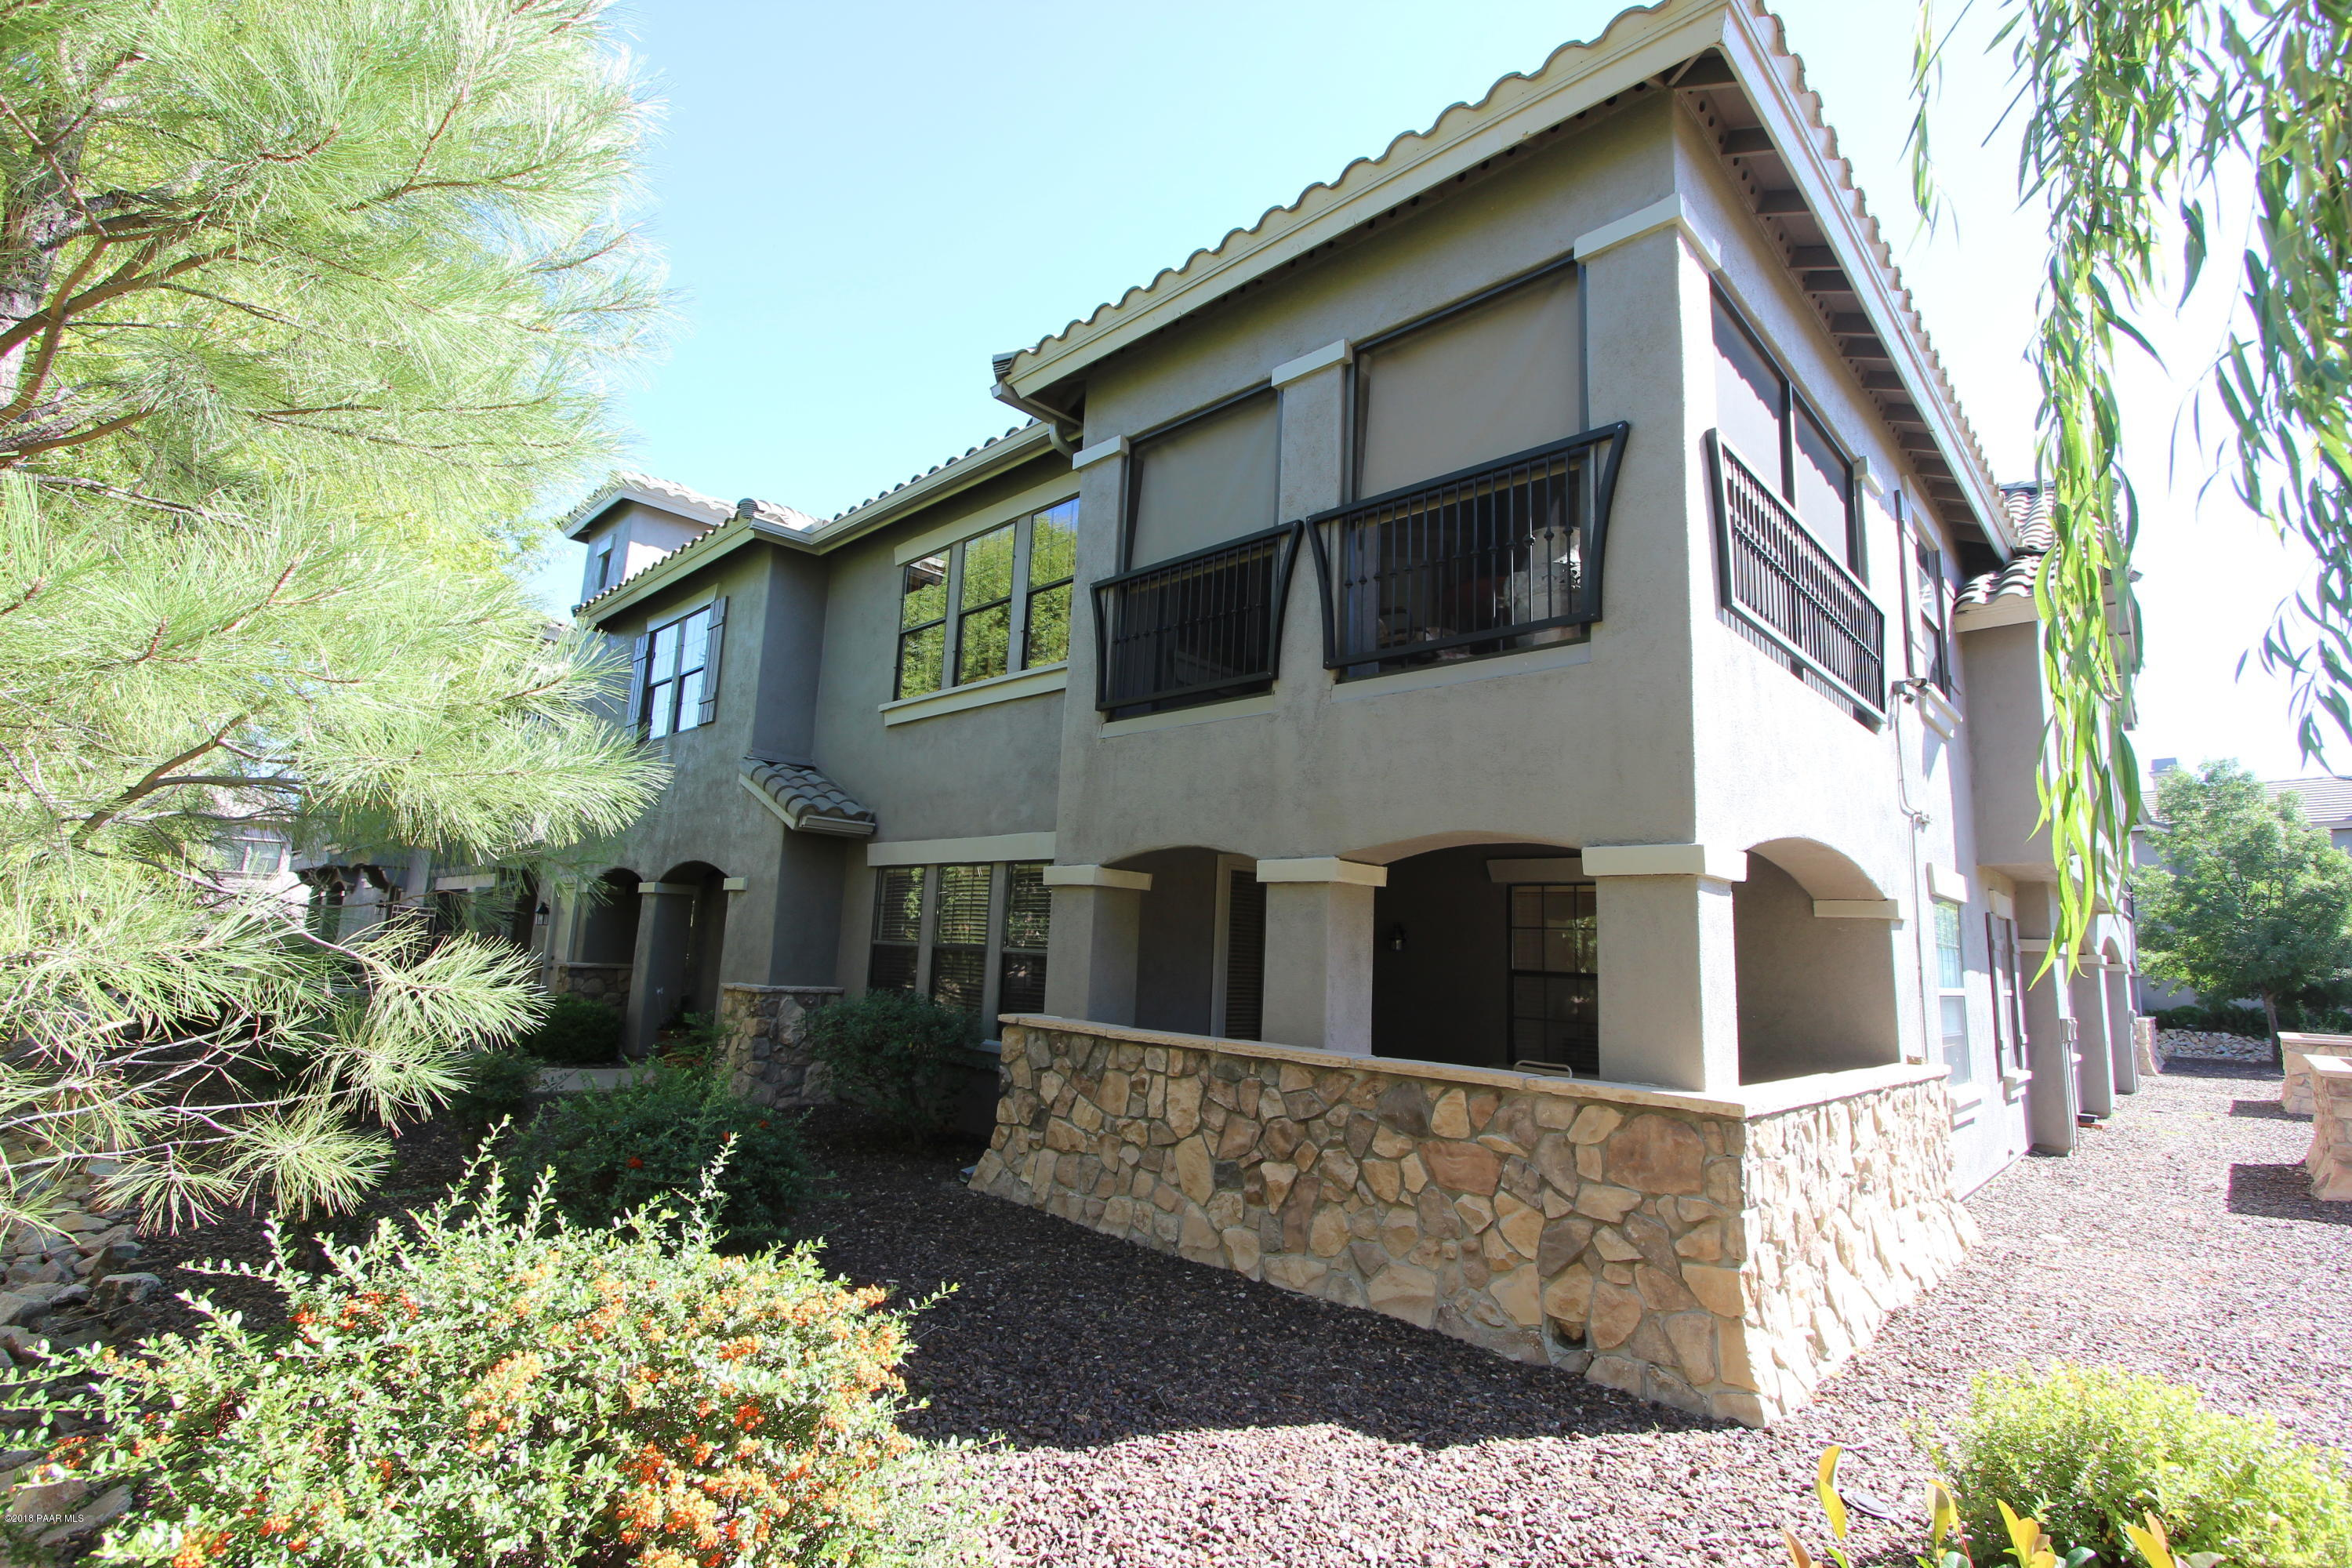 1716 Alpine Meadows Unit 1101 Prescott, AZ 86303 - MLS #: 1015419